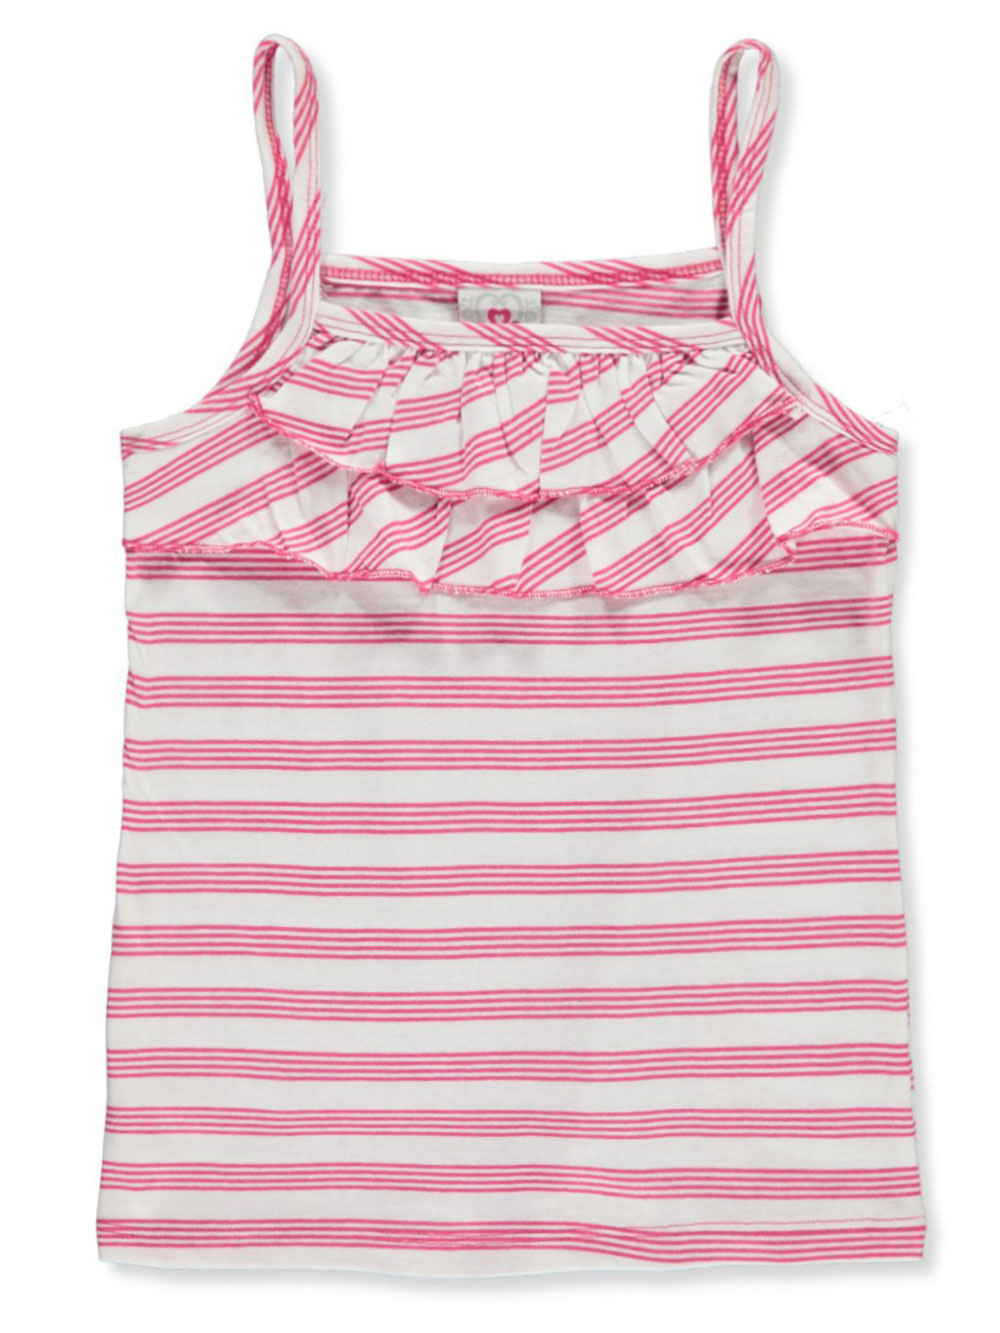 Girls' Striped Ruffle Tank Top